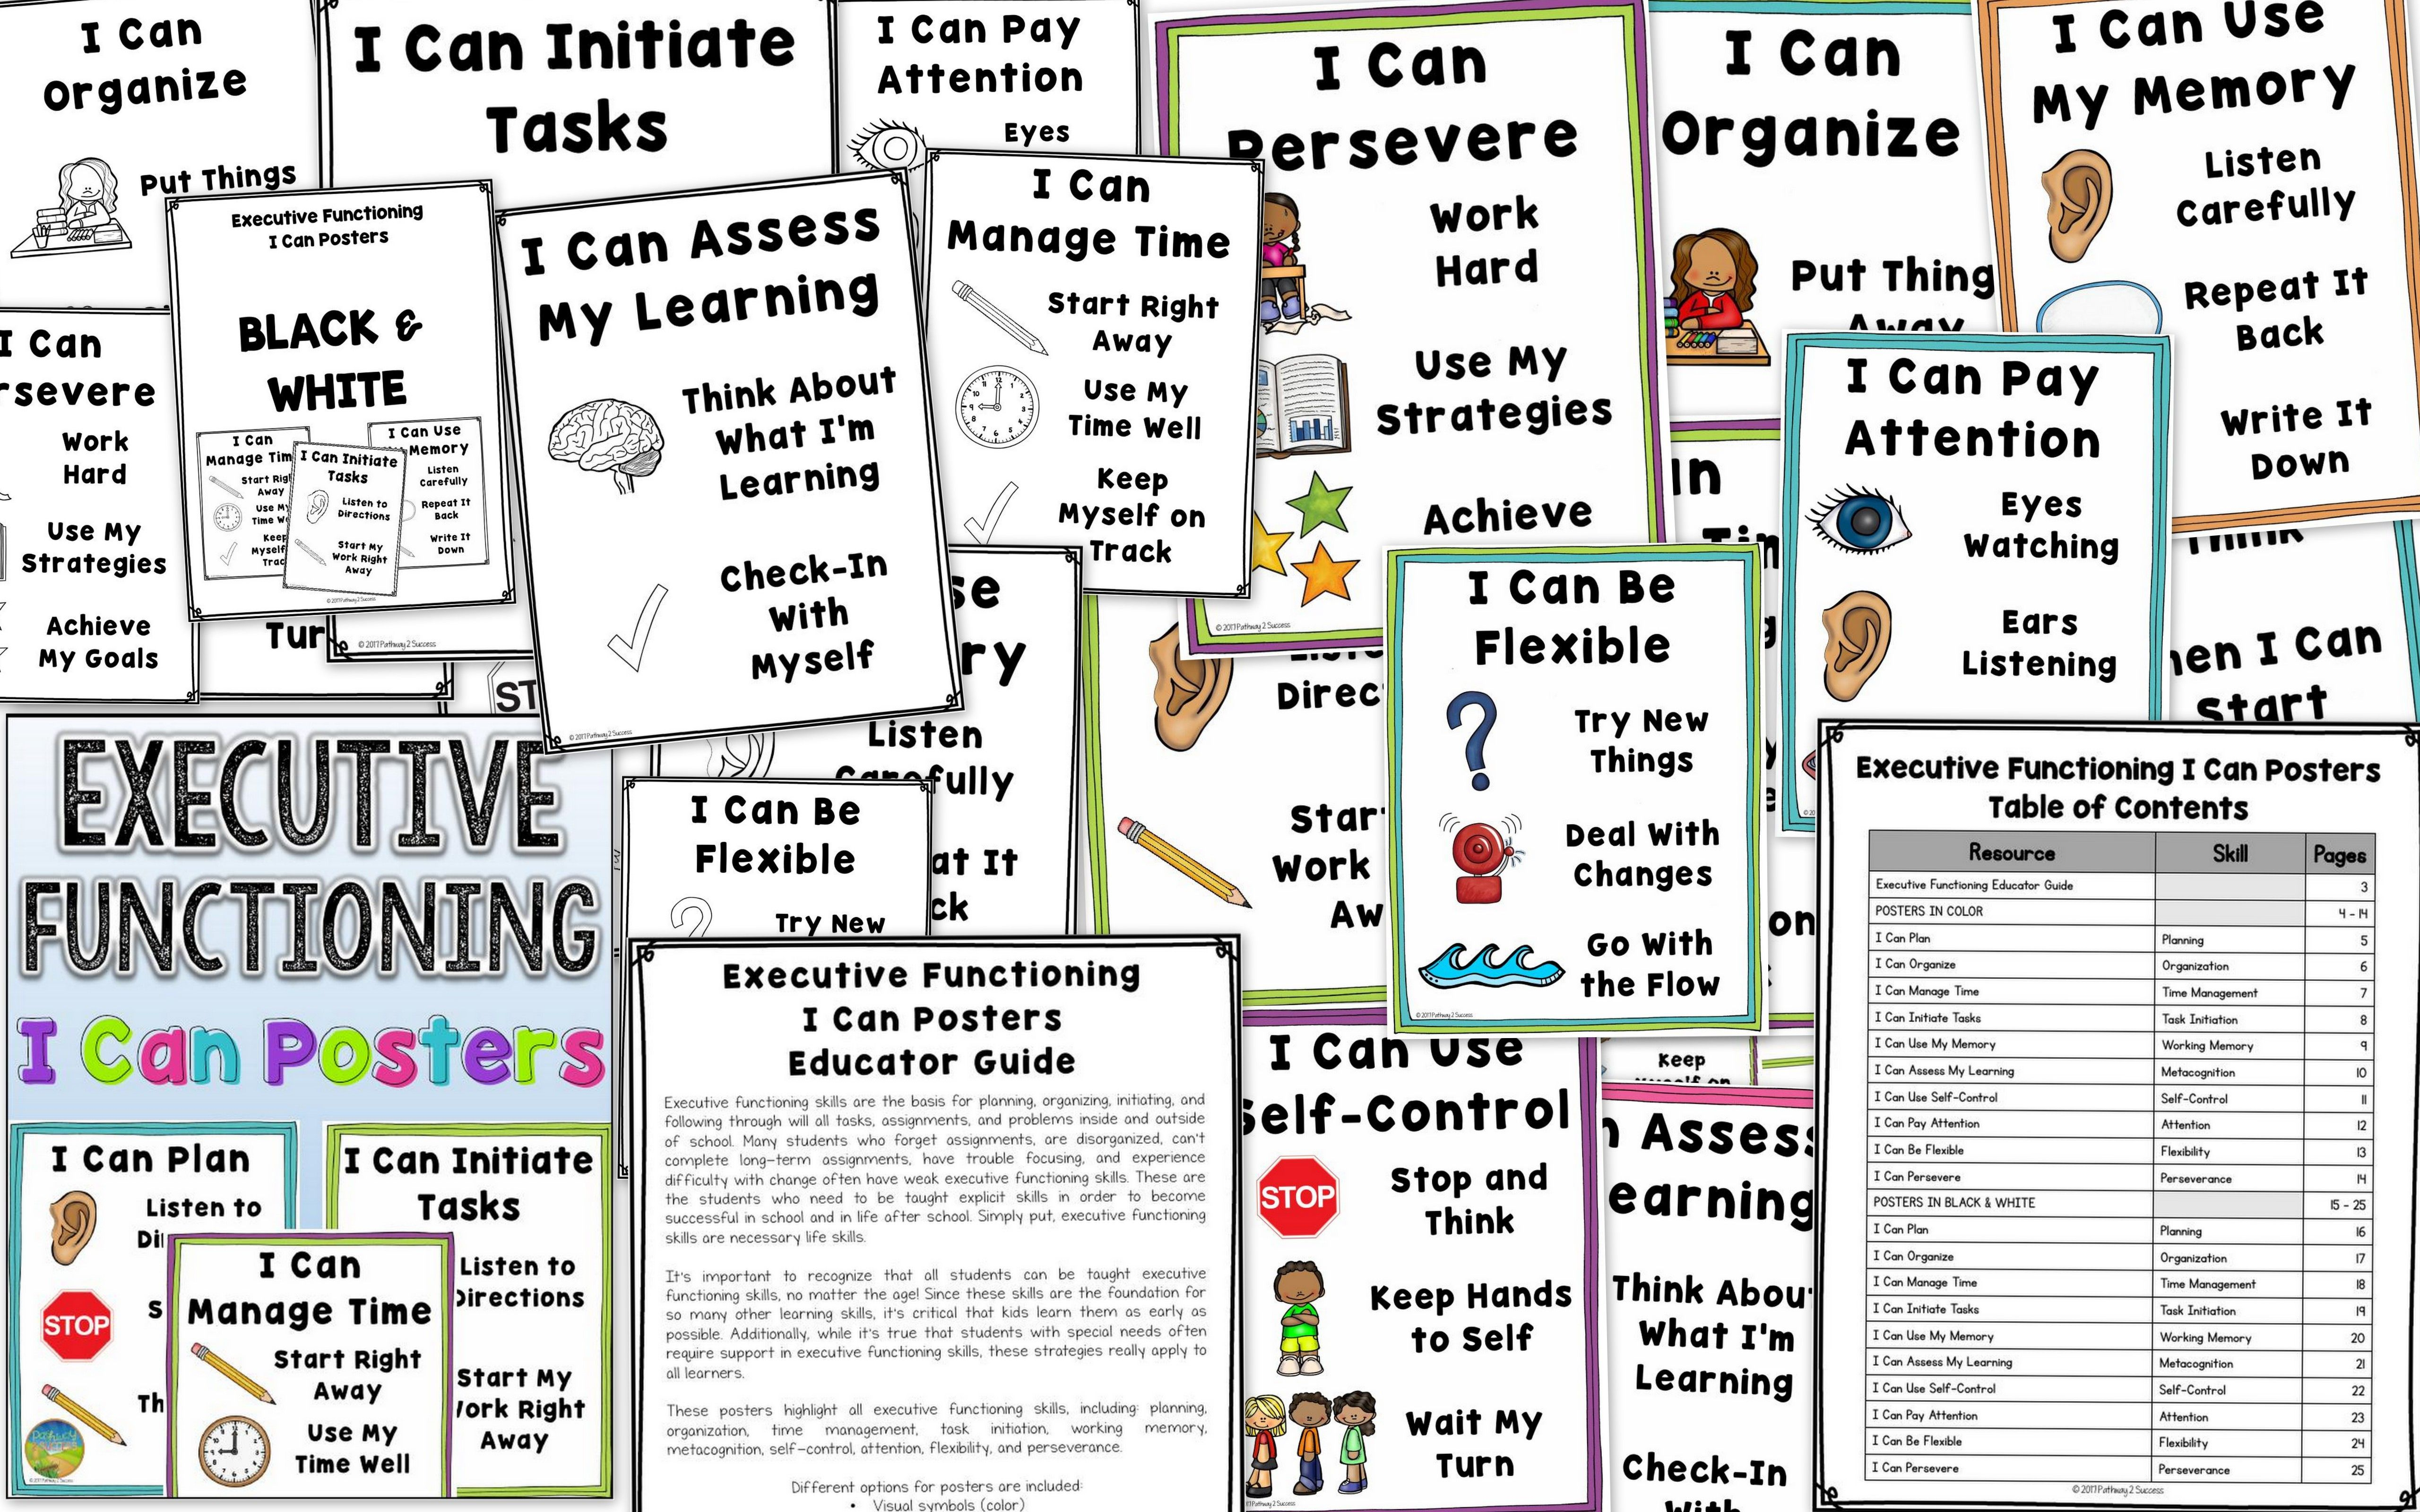 Executive Functioning Posters With Visual Cues